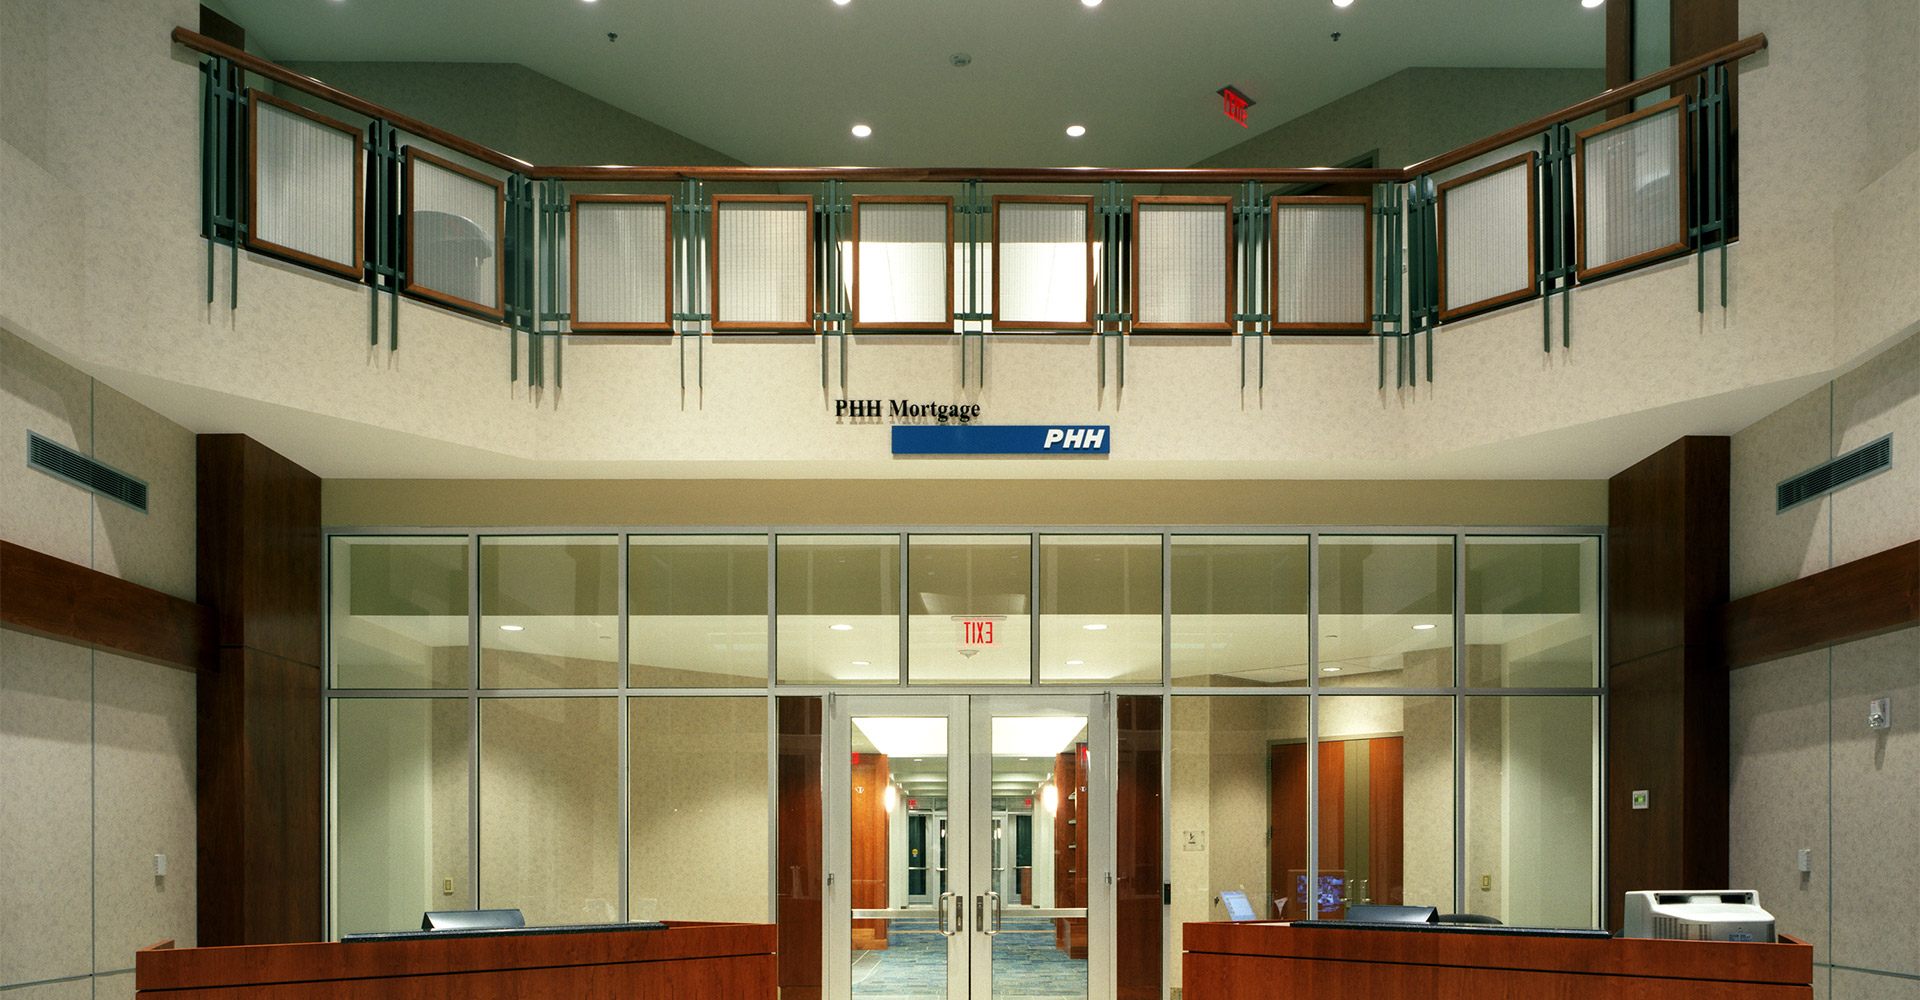 Interior of PHH.